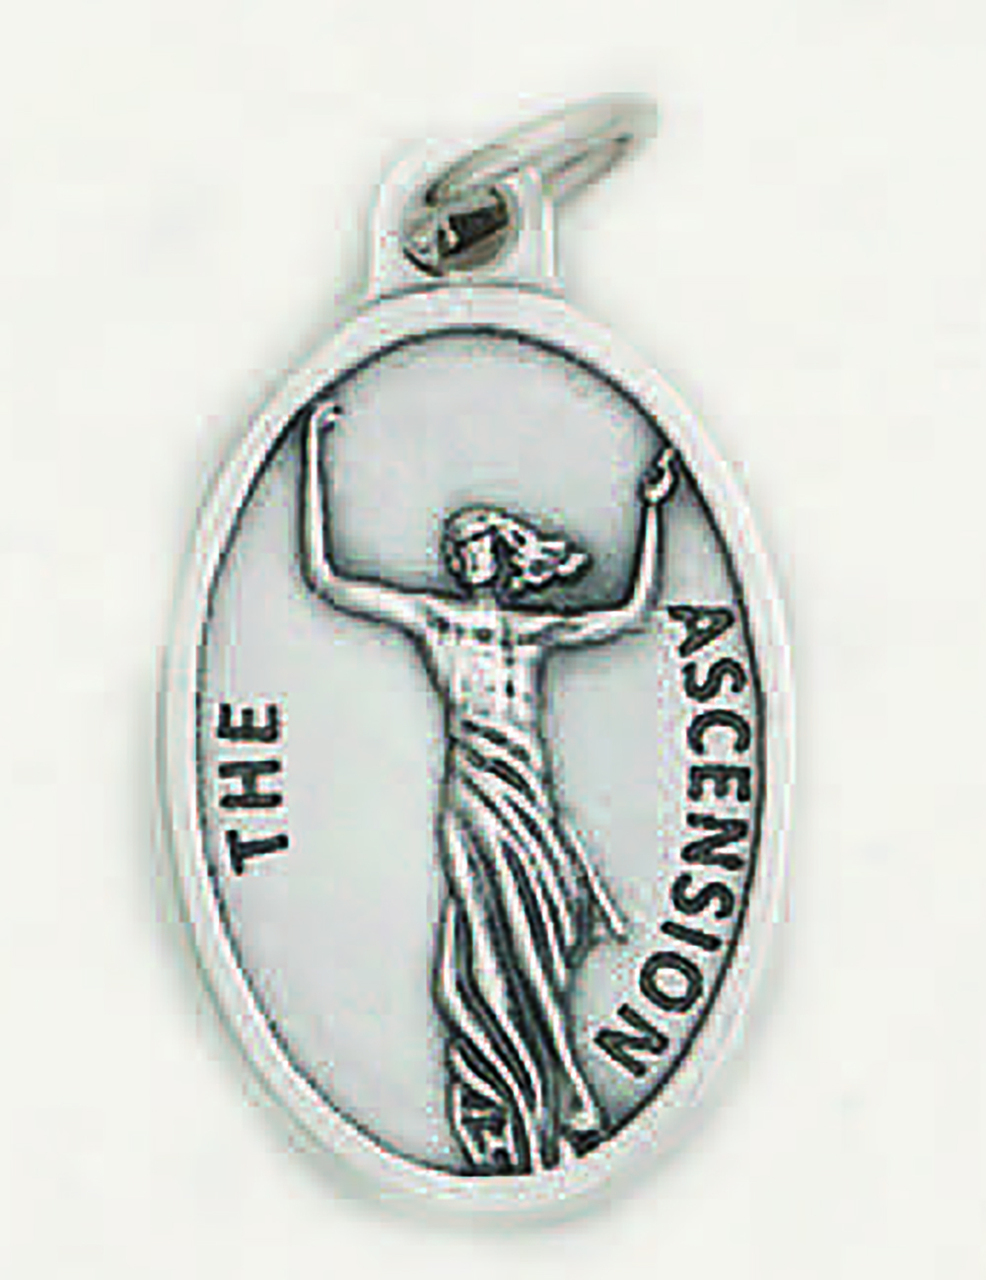 The Ascension medal